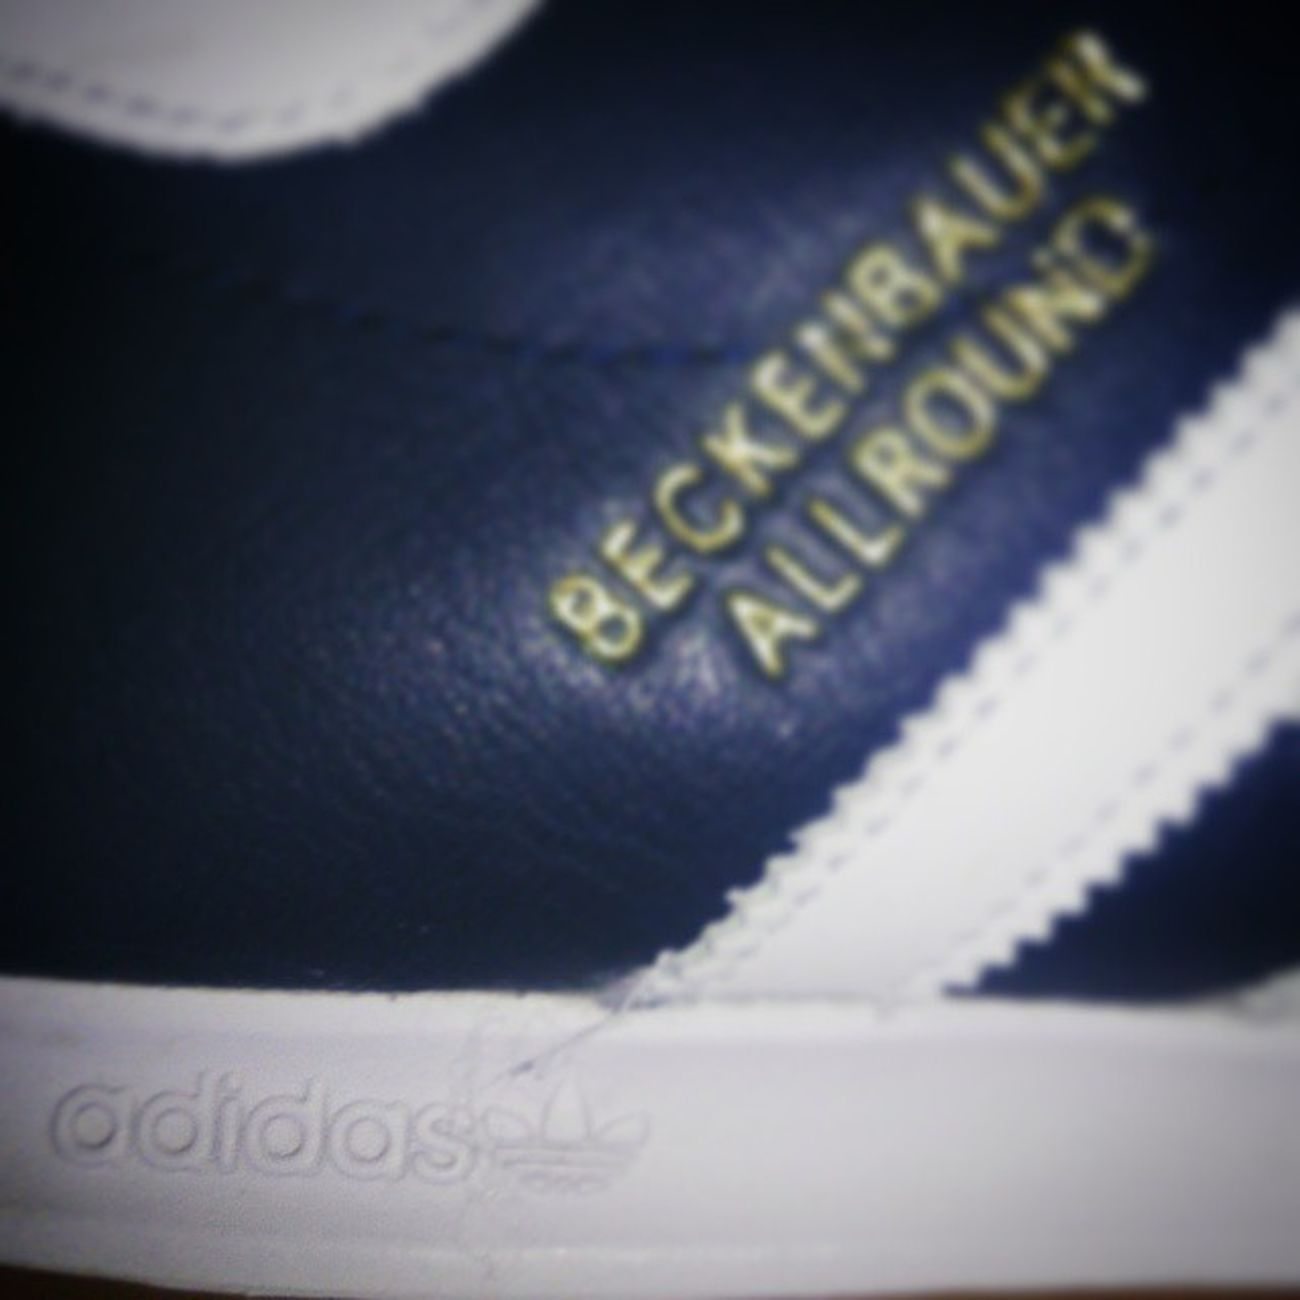 Bit Rainy so a good day for the Beckenbauers to join me today. Beckenbauer Adidasoriginals Trefoilonmyfeet Yesadidas Adidas_gallery Adorethestripes Thebluebox Adidasramon085